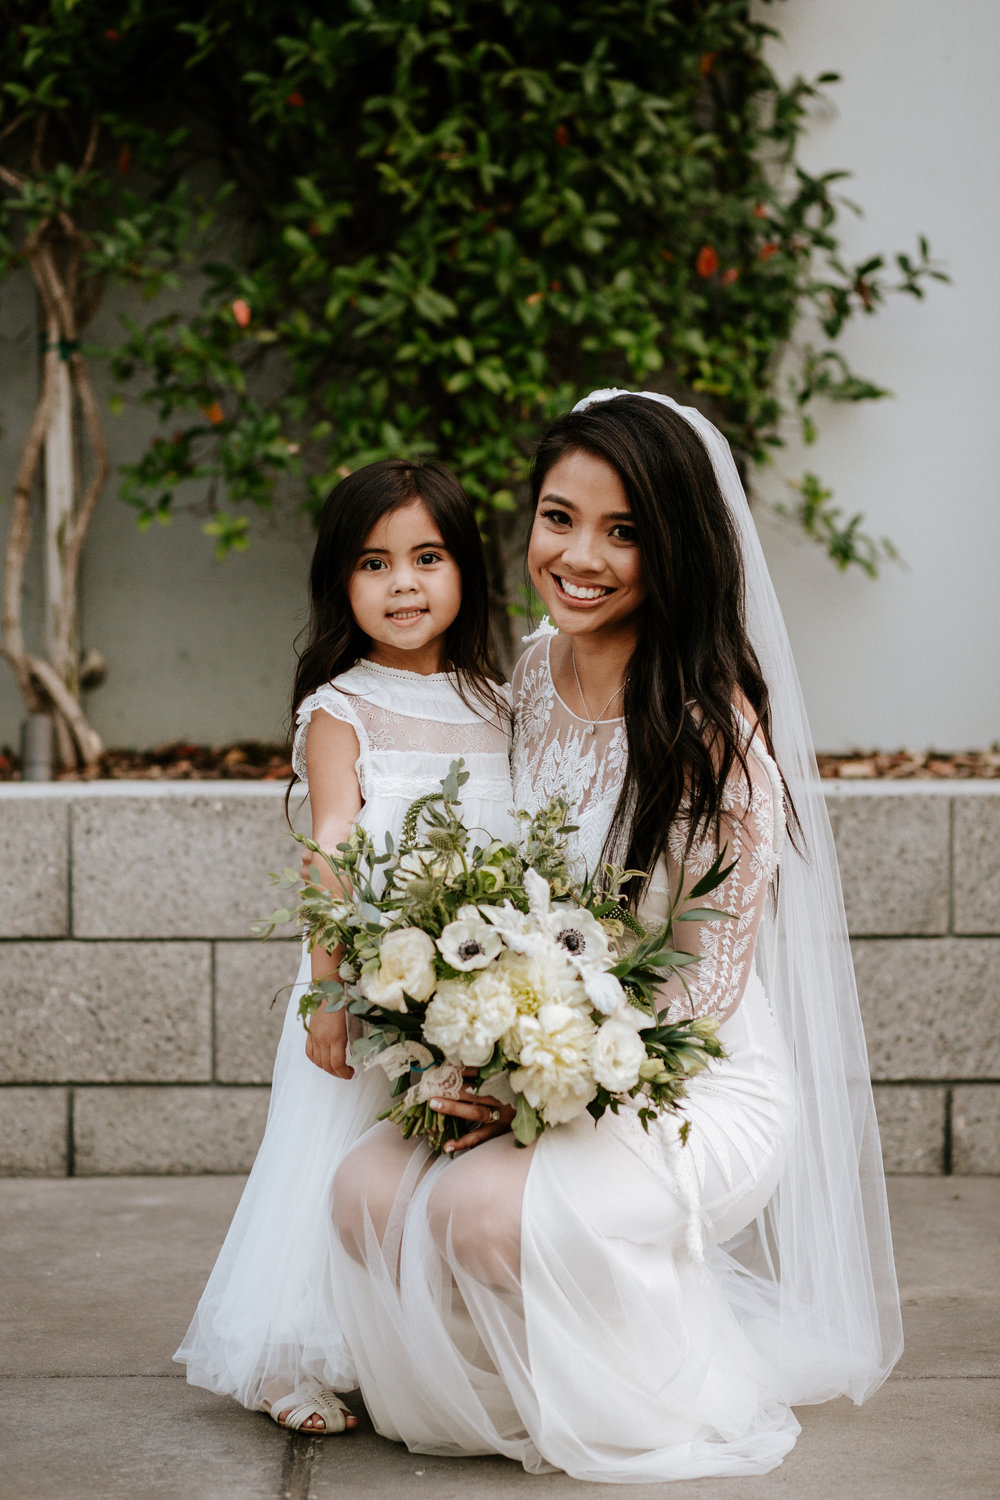 2017-09-09_Maisie-Danny_Wedding_Green Acre Campus Pointe_Paige Nelson Photography_HR-501.jpg